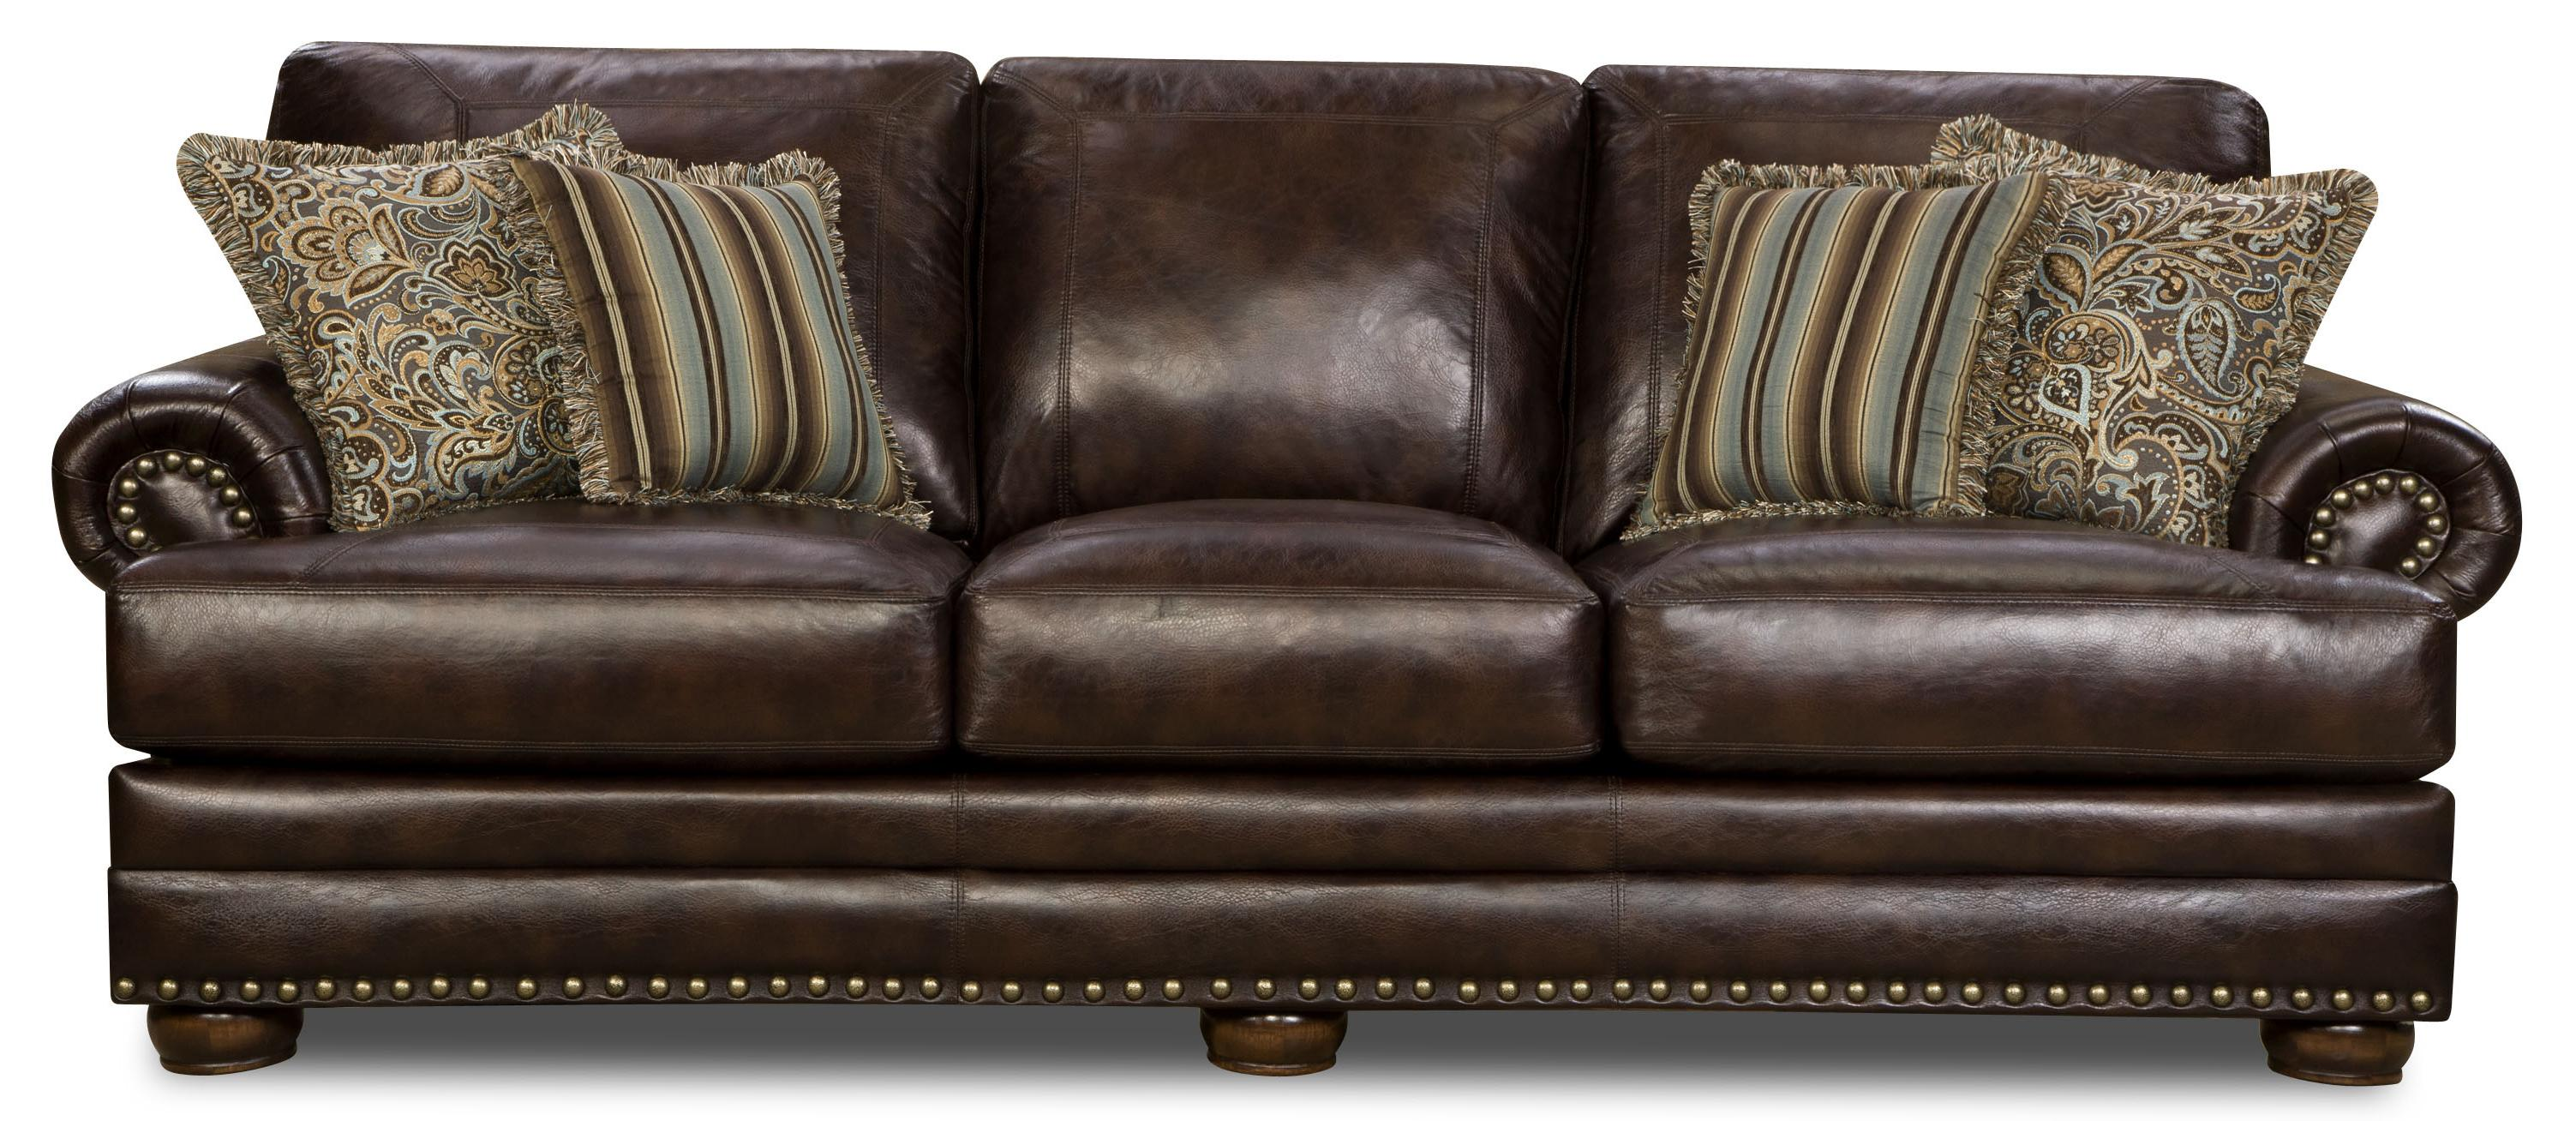 corinthian furniture sofa reviews comfy sleeper leather at